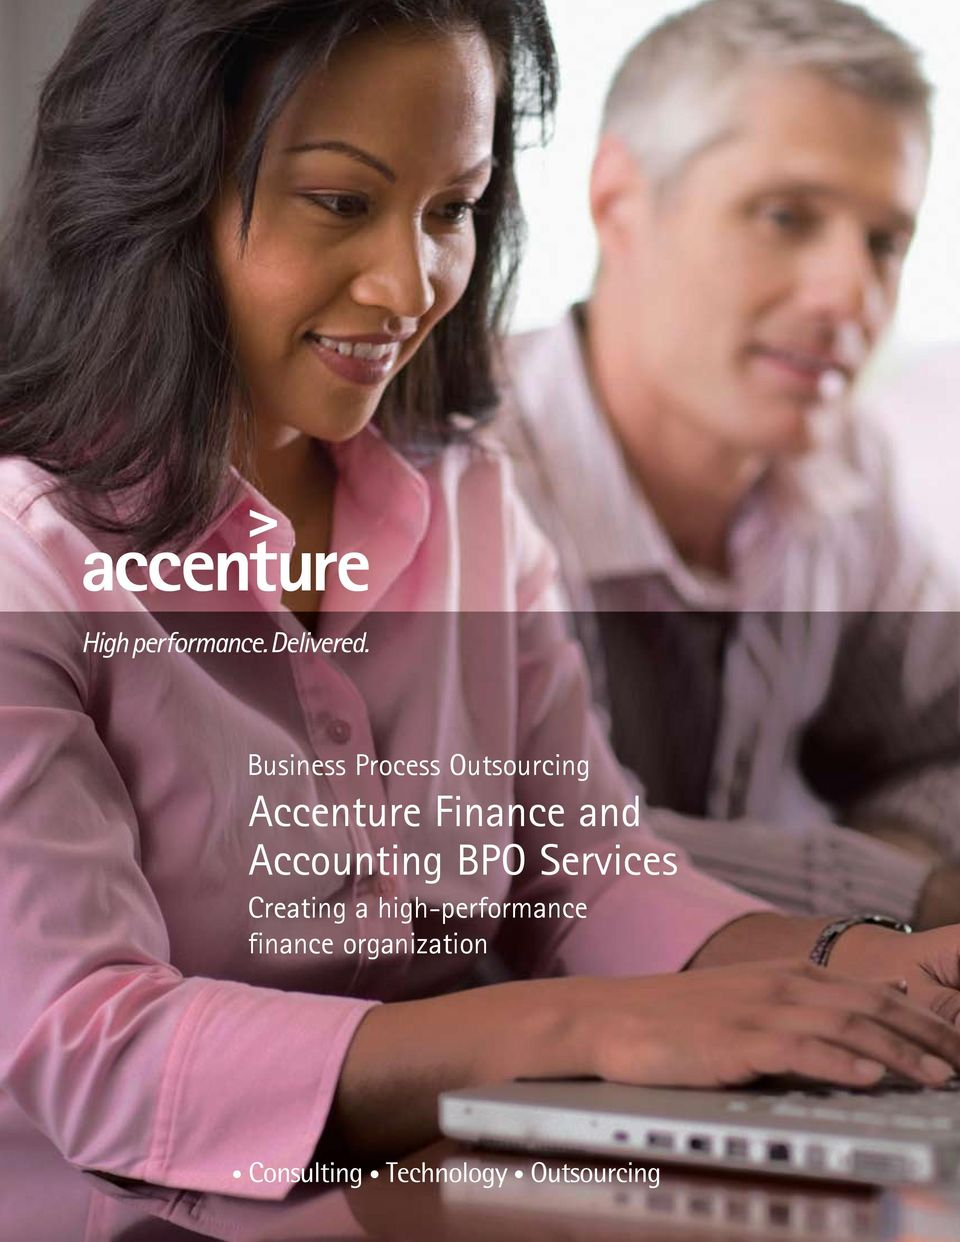 Accounting BPO Services